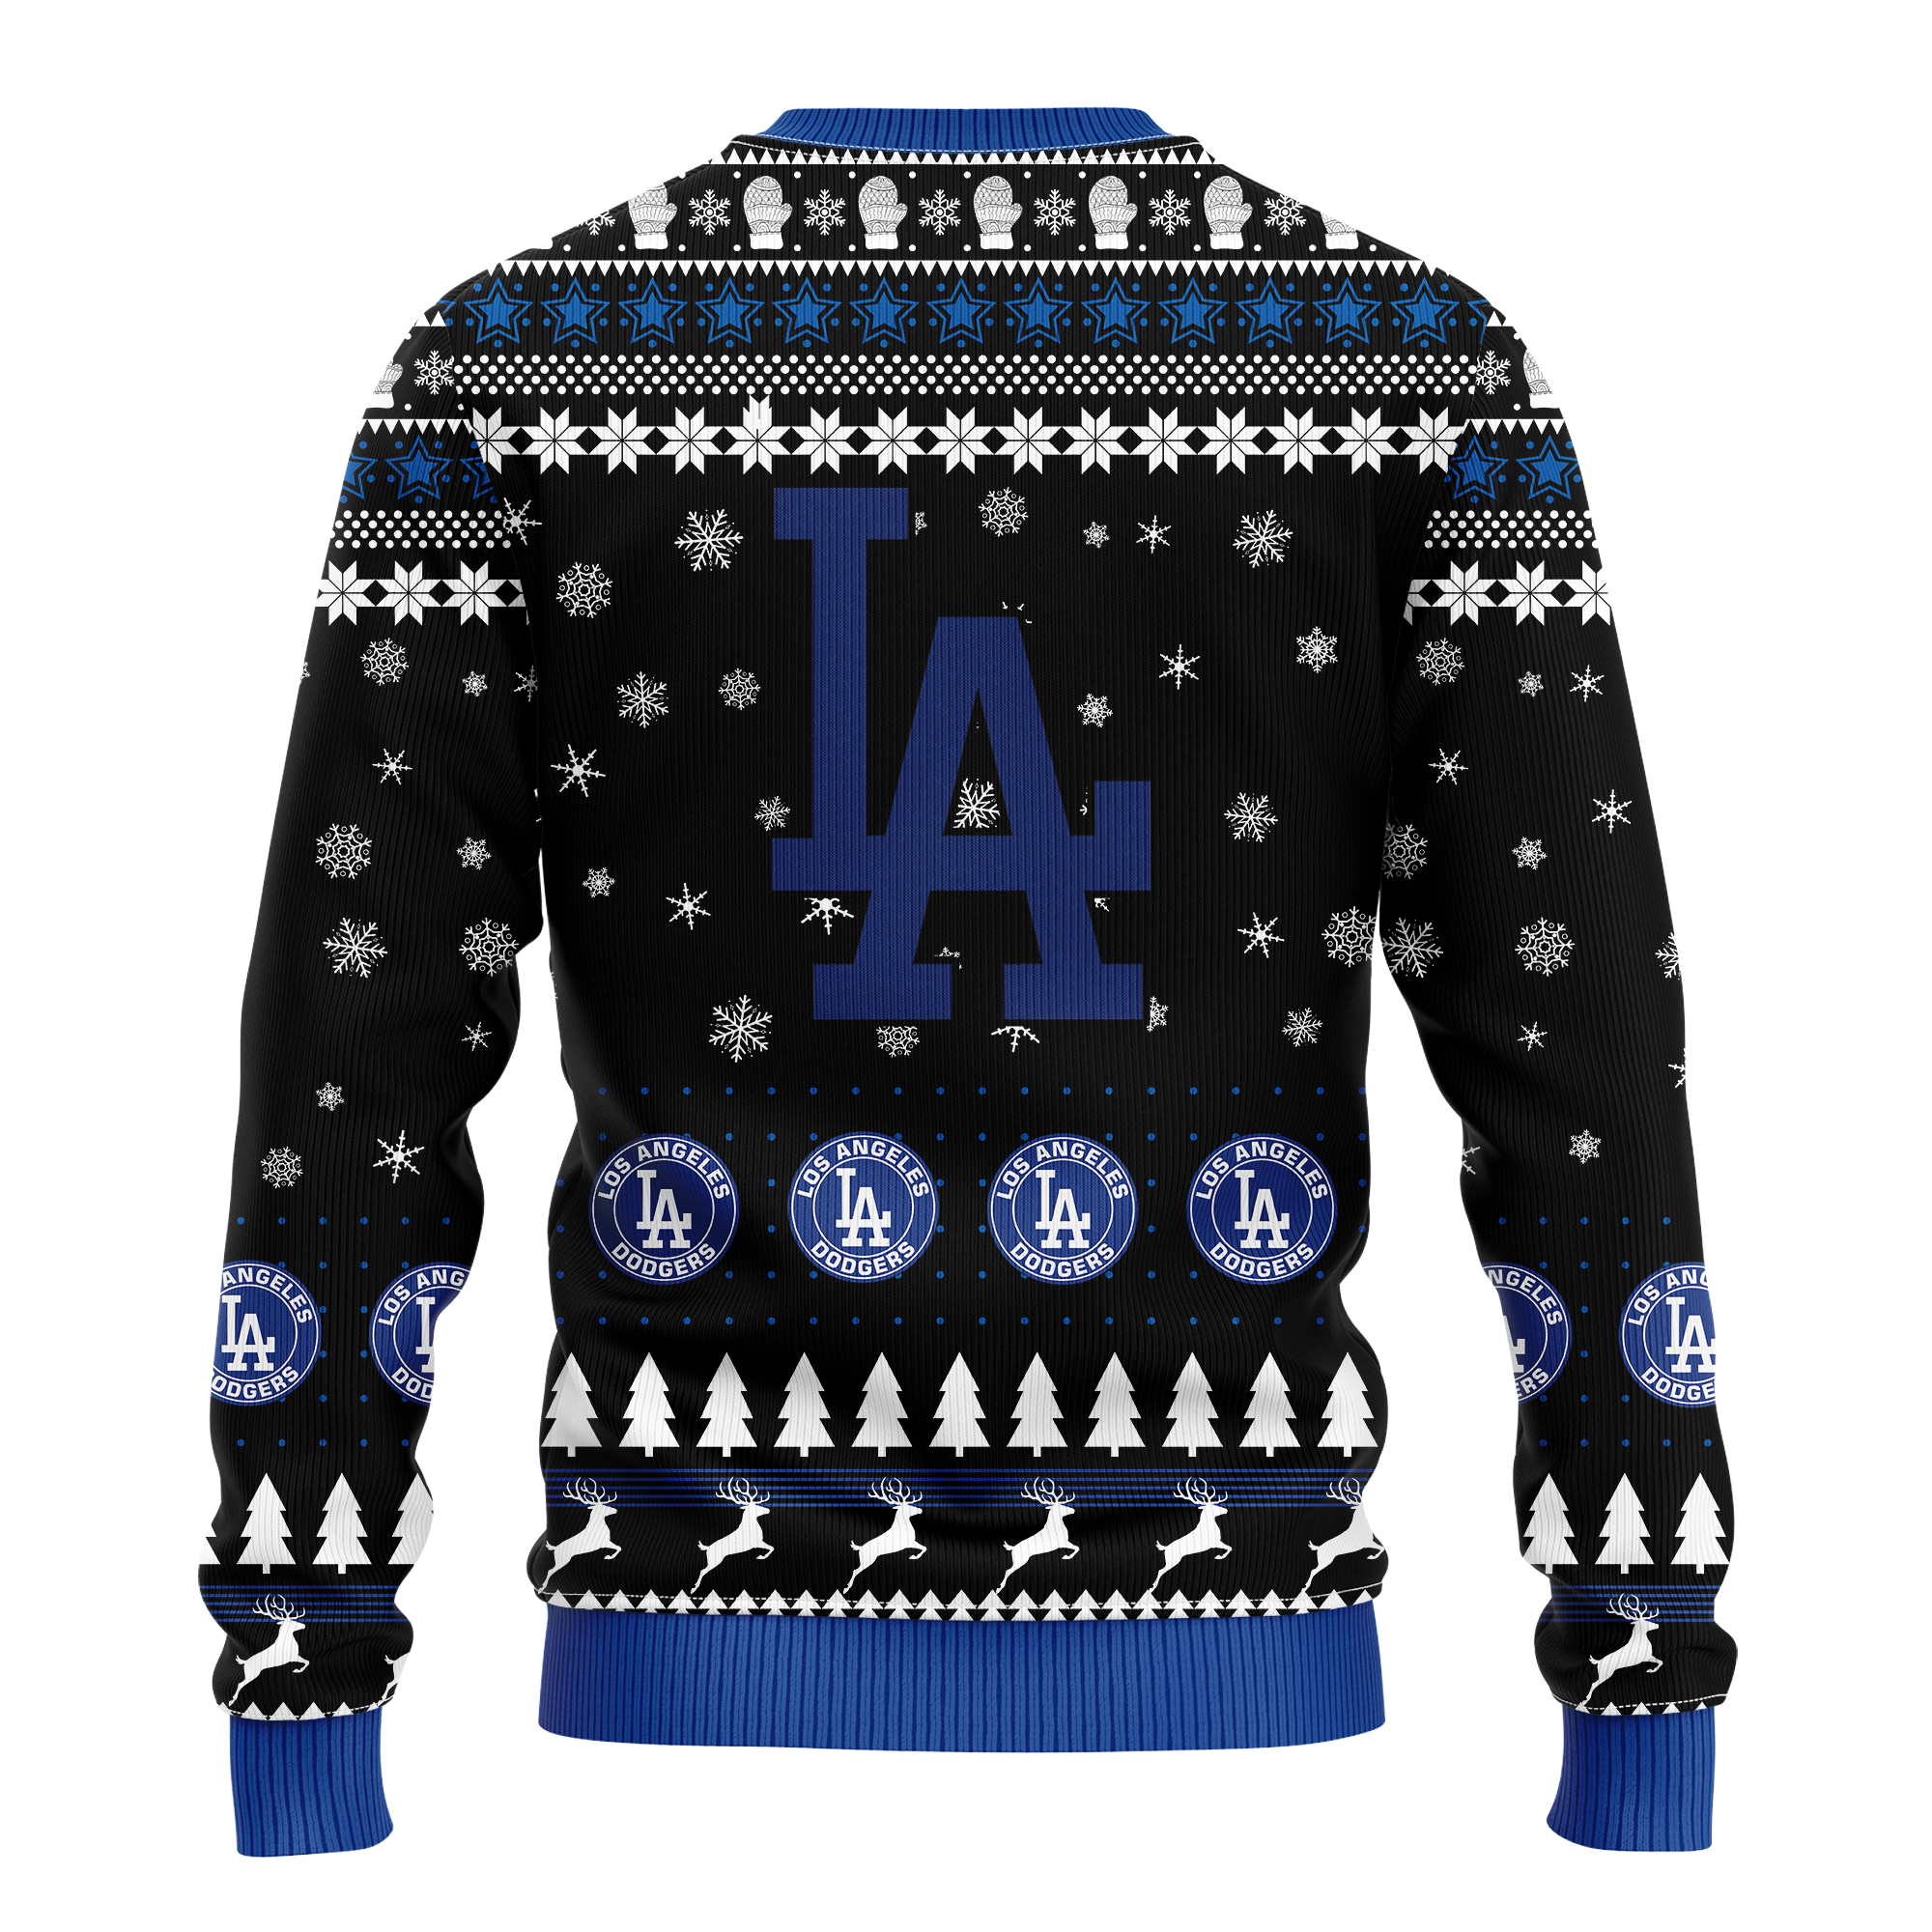 los angeles dodgers world champions 2020 all over printed ugly christmas sweater 5